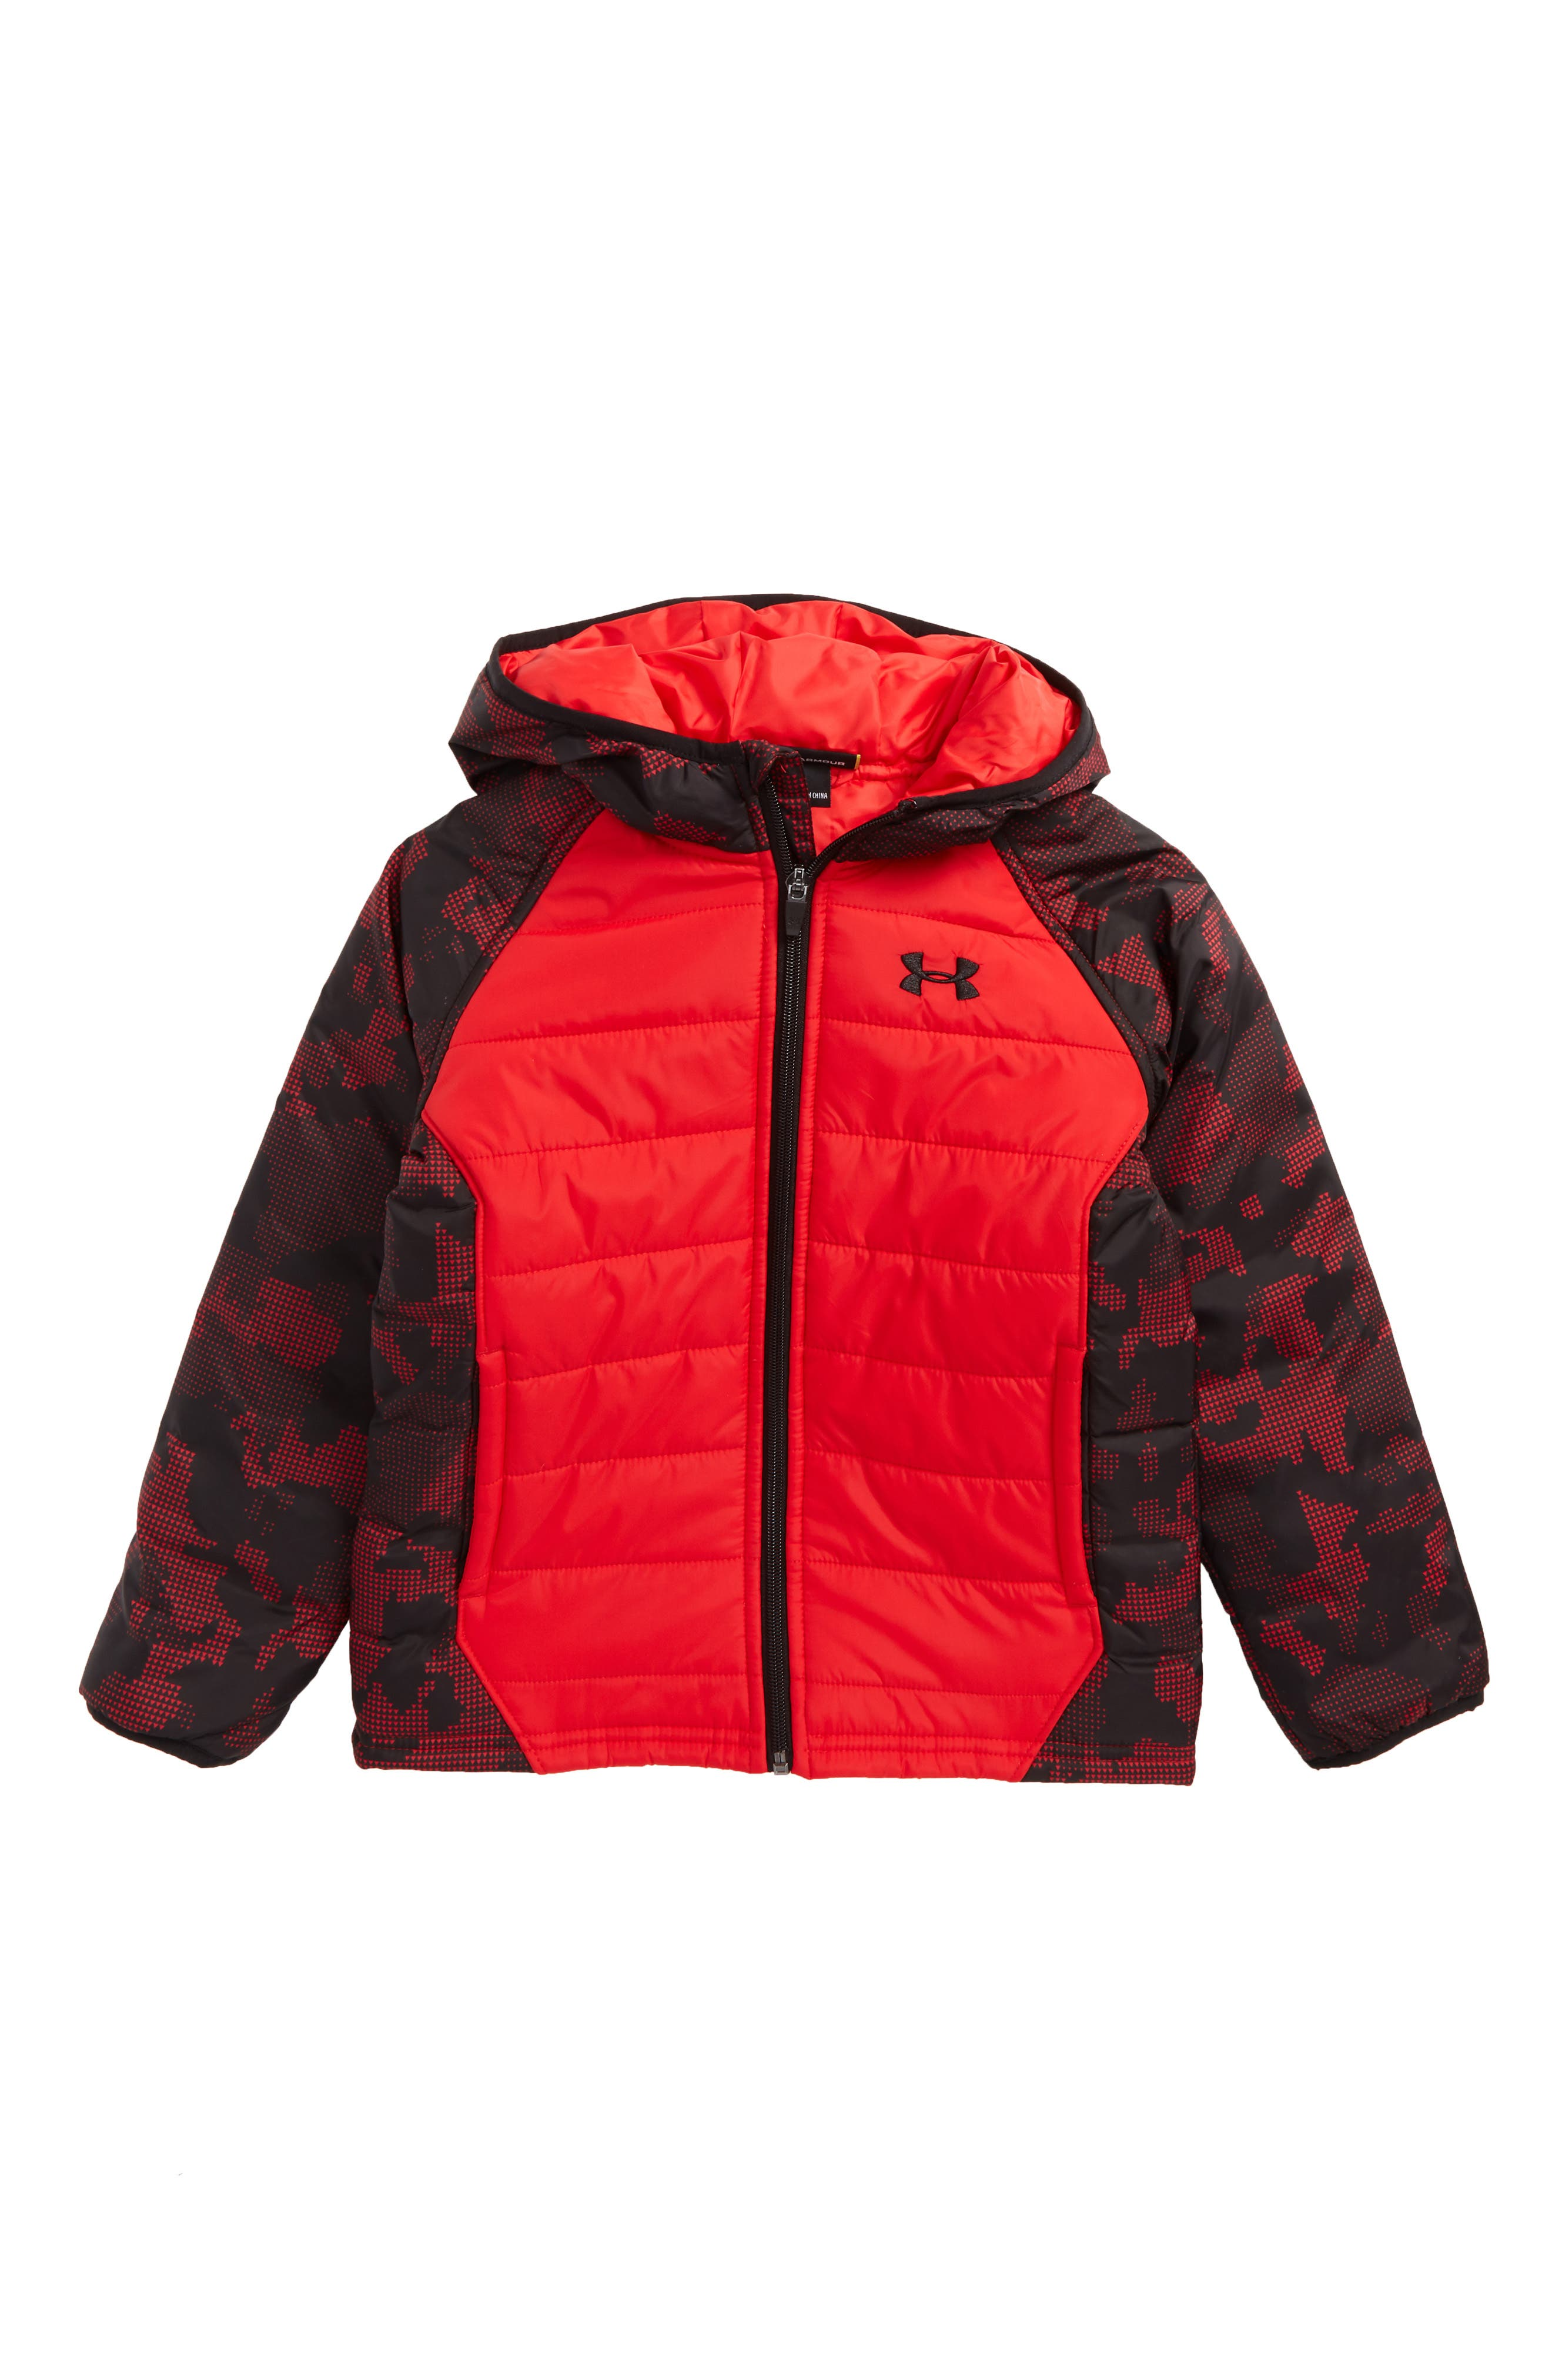 Werewolf Water Resistant Hooded Puffer Jacket,                             Main thumbnail 1, color,                             Red